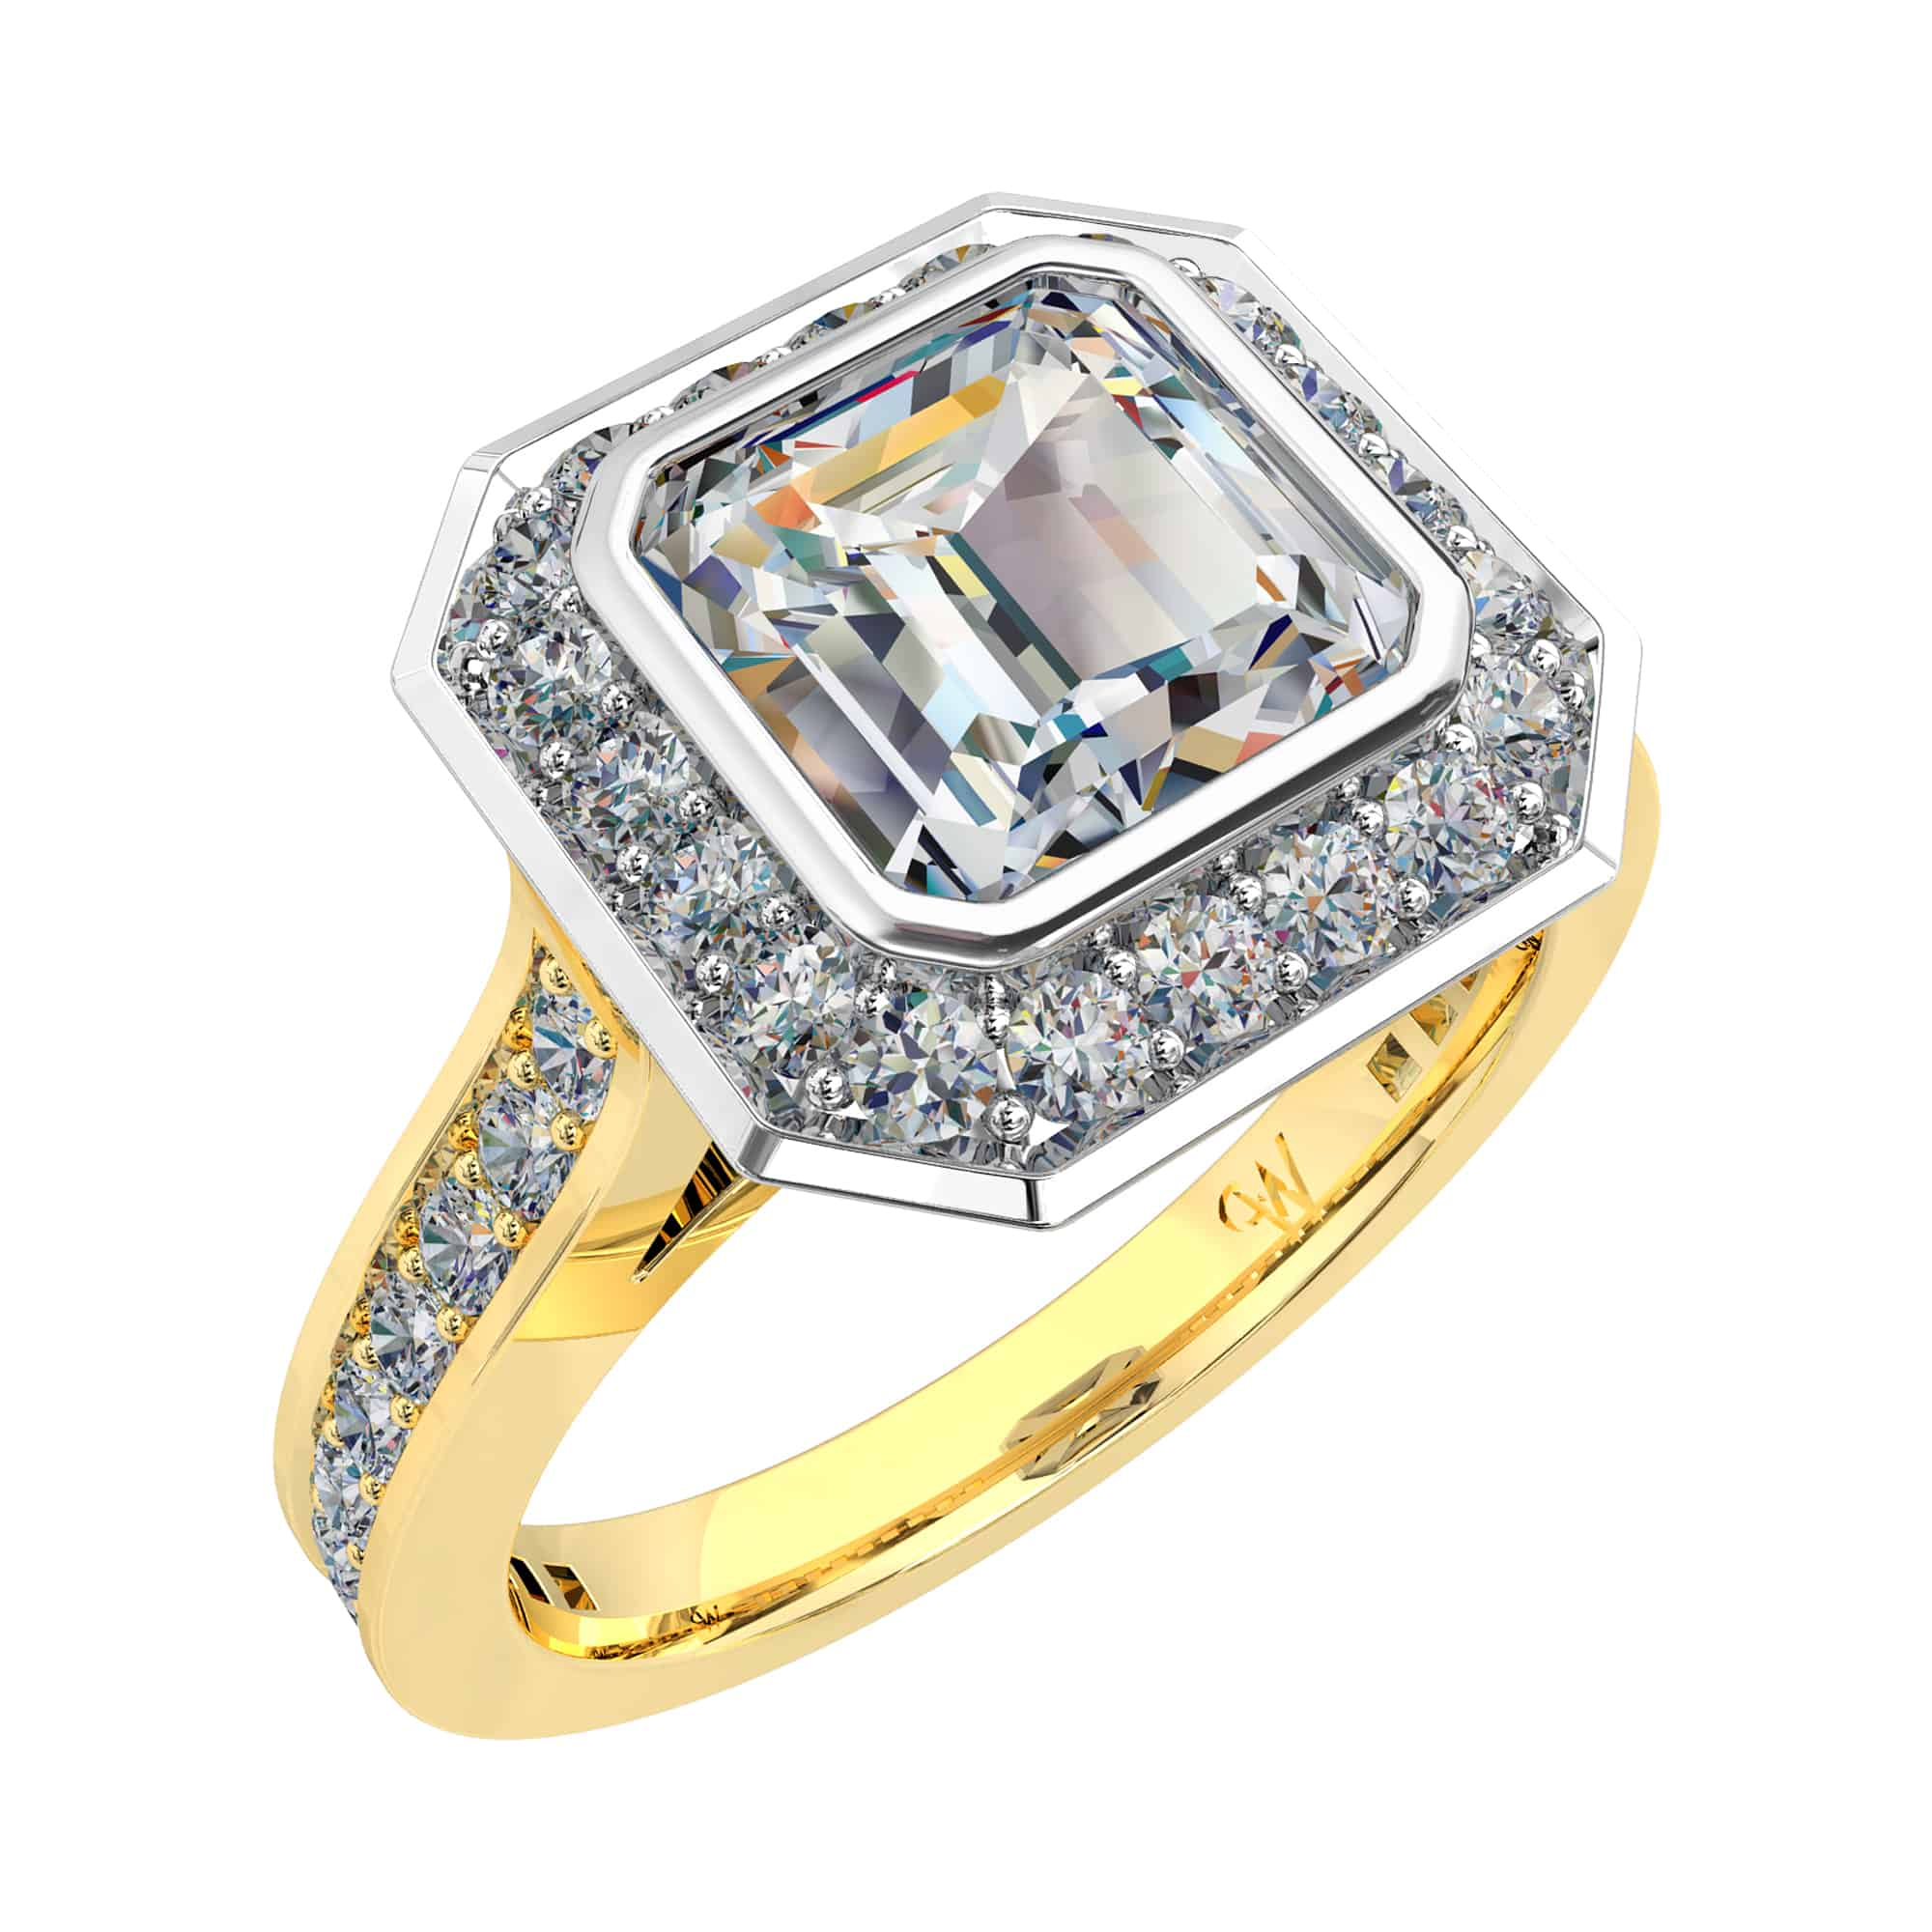 rings taper bullet cut asscher jewellery designs sp engagement adasco and